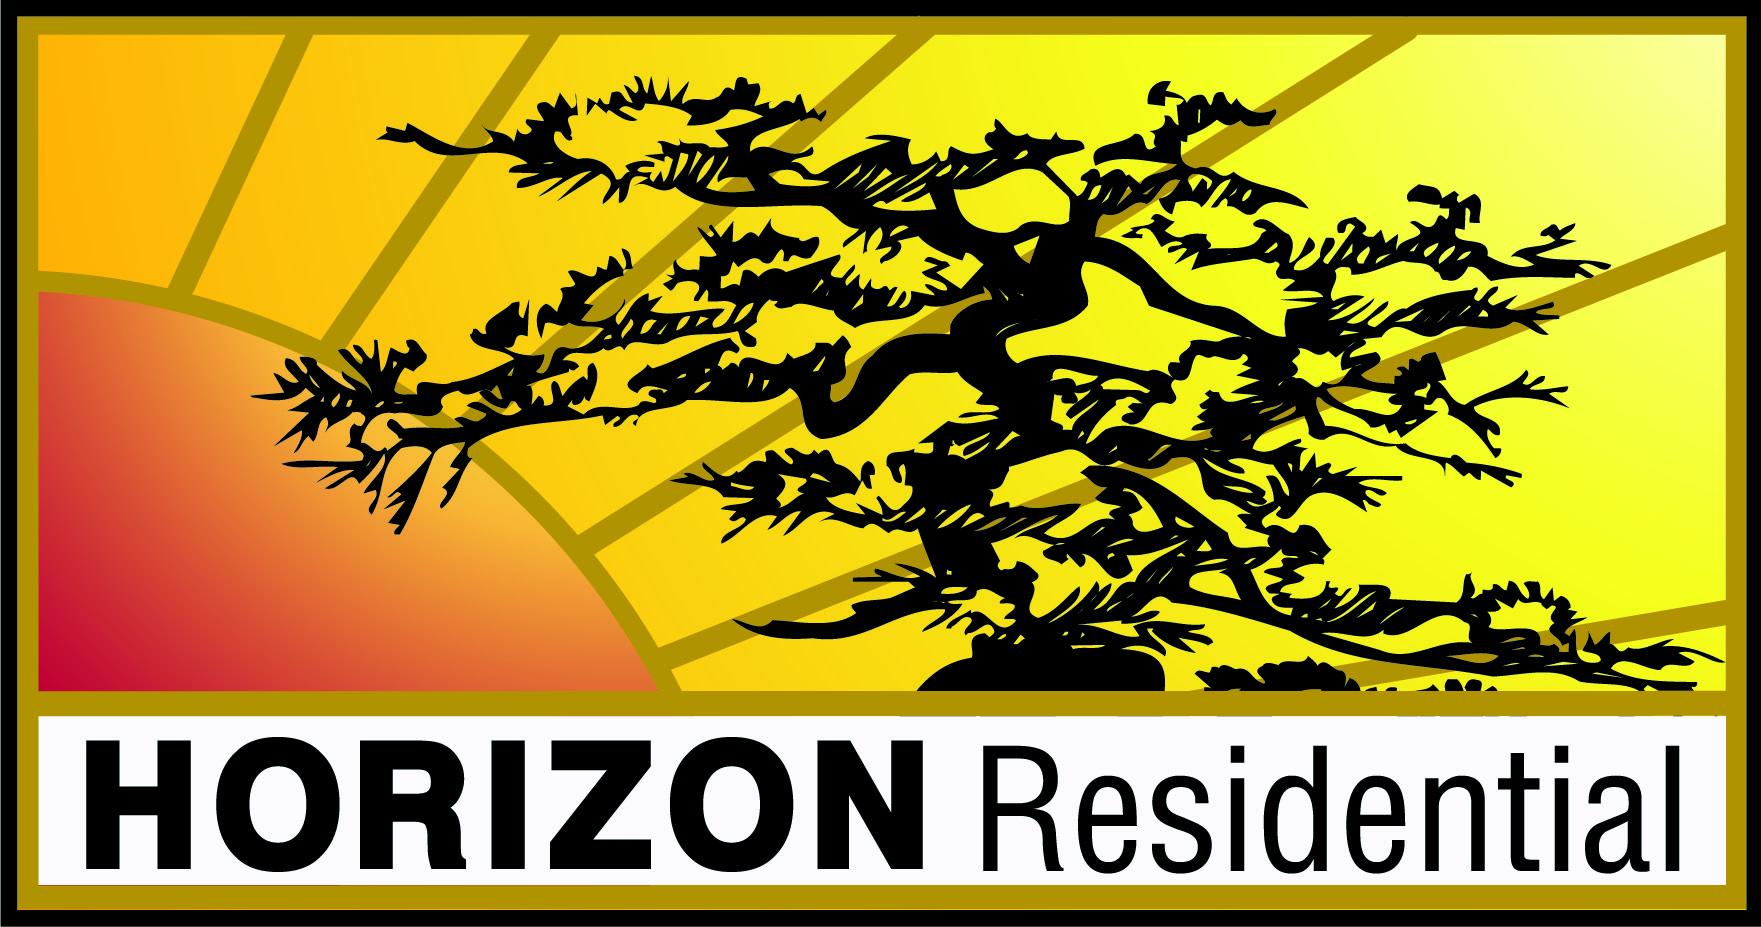 Logo design by Jeff Poissant, RGD of Evolving Media & Design Inc. for Horizon Residential, in Ottawa Ontario.